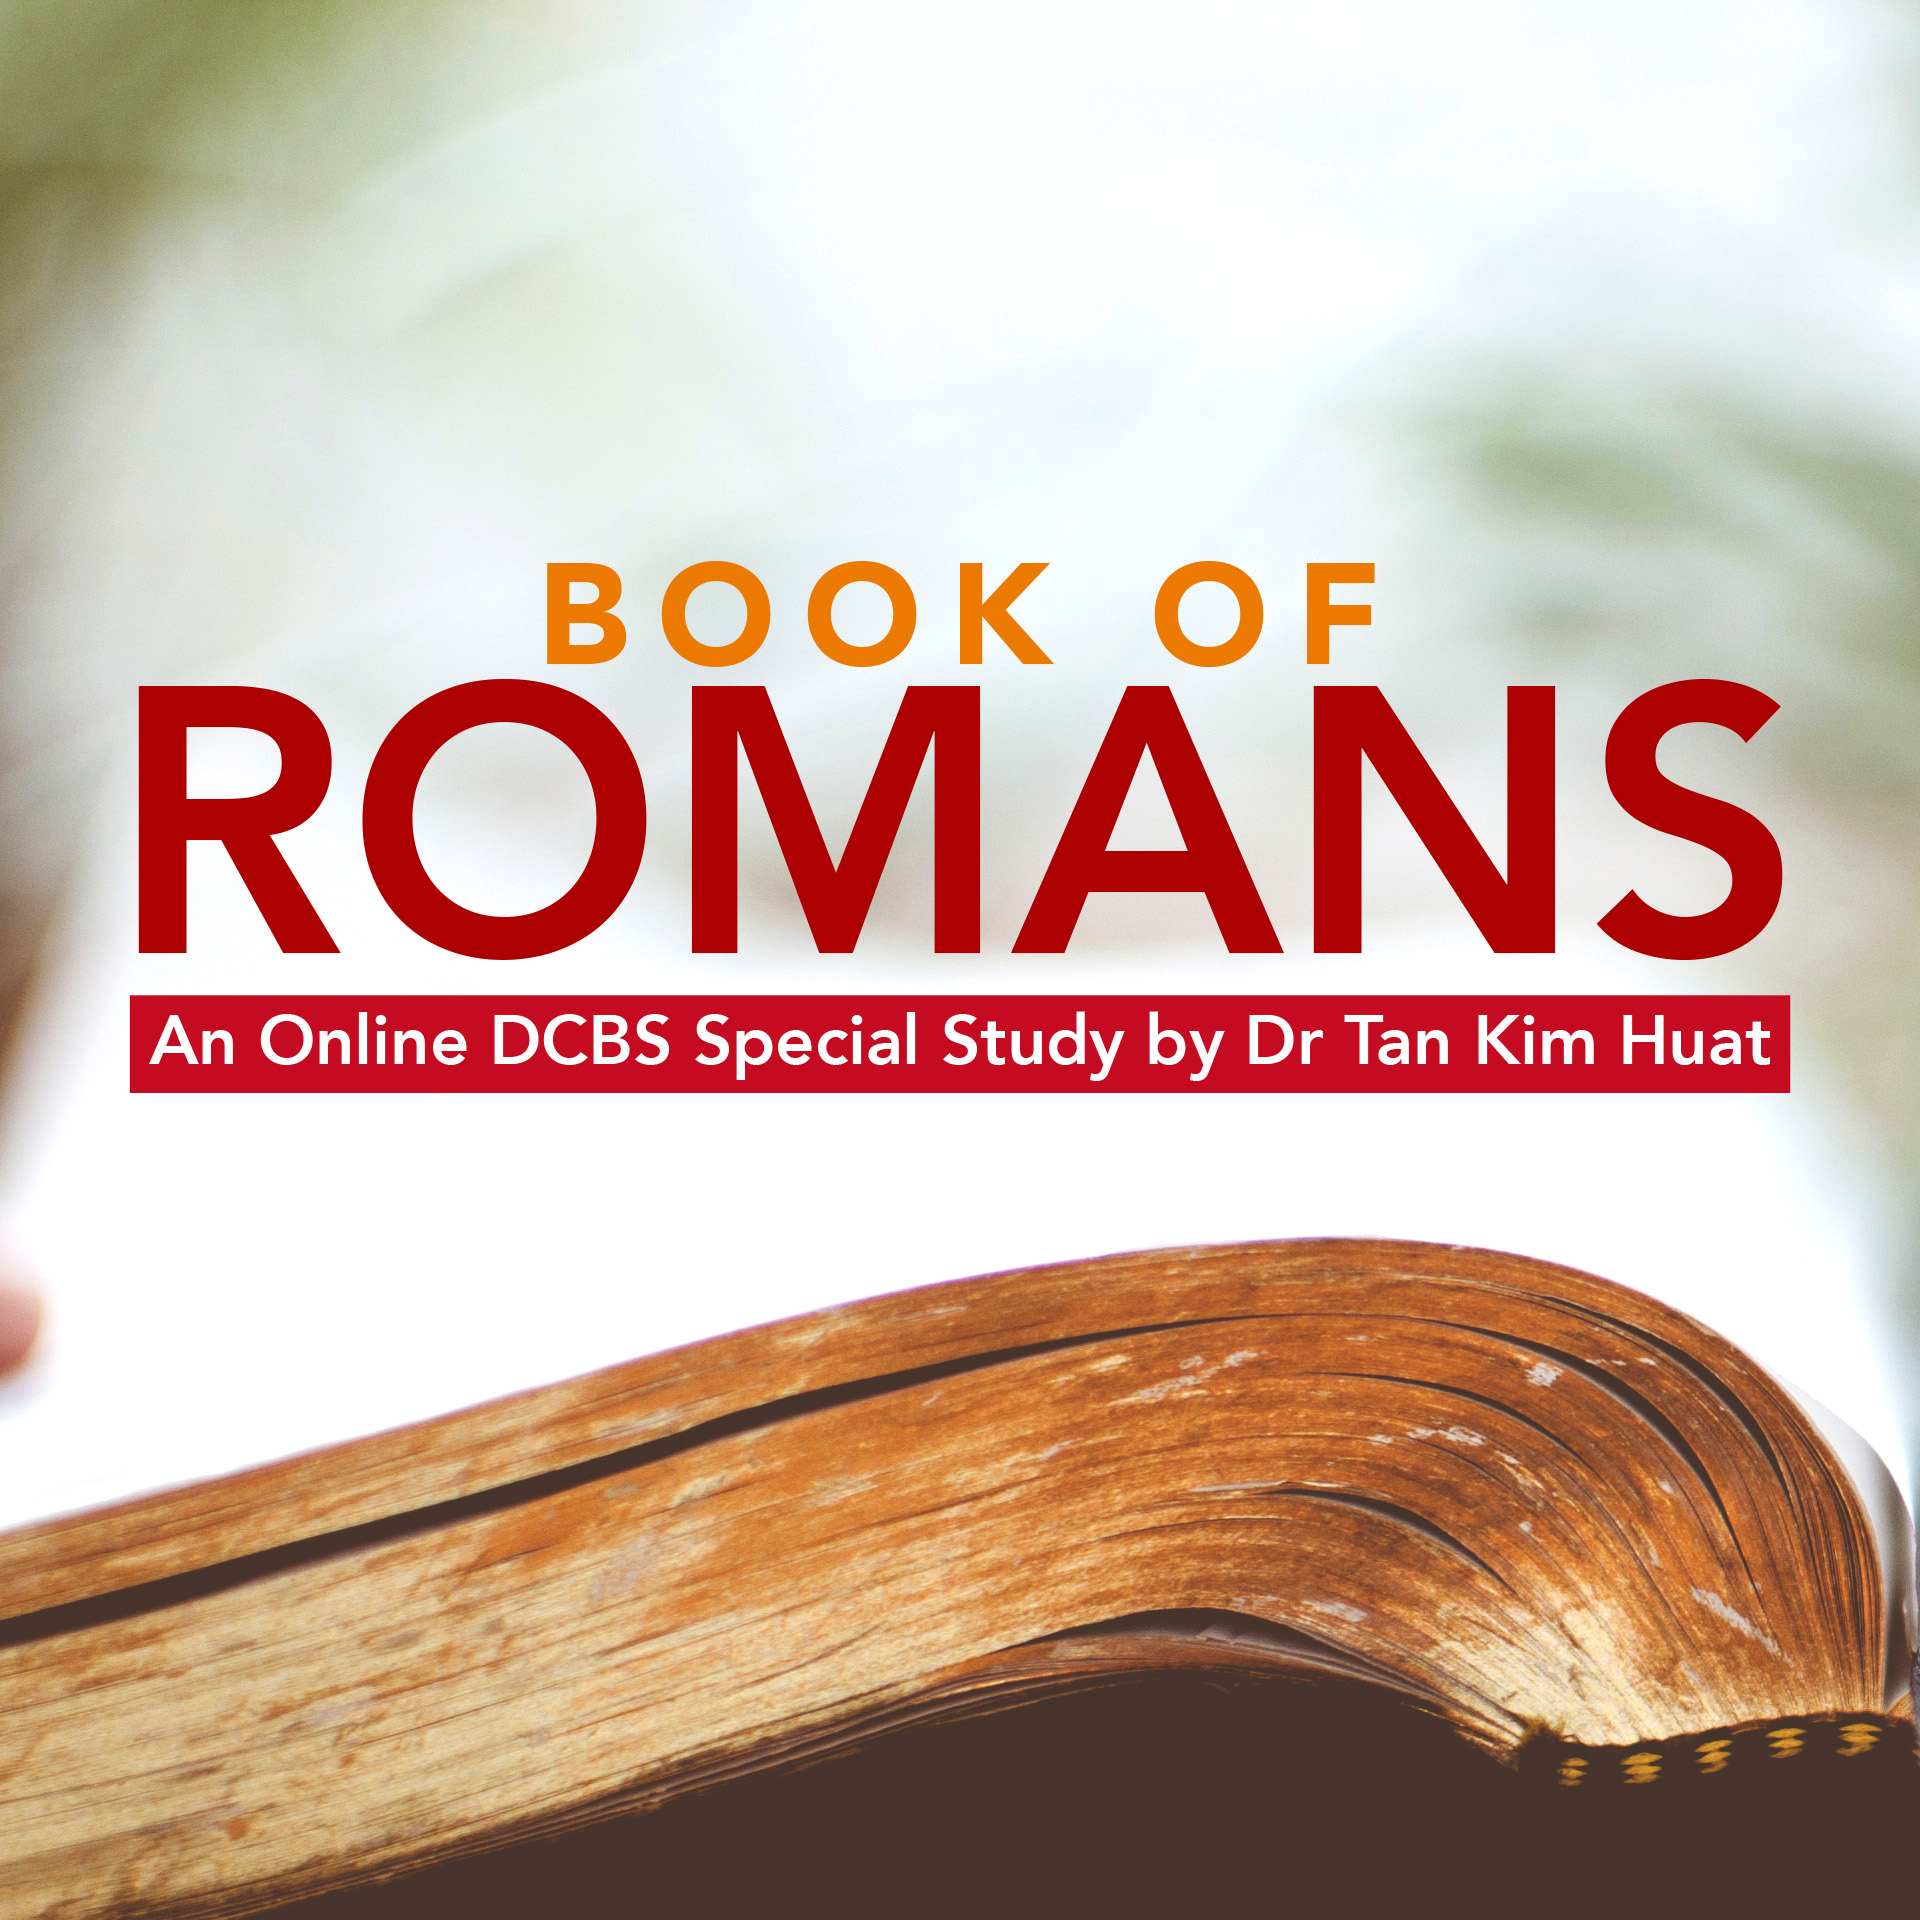 An Online DCBS Special Study: The Book of Romans